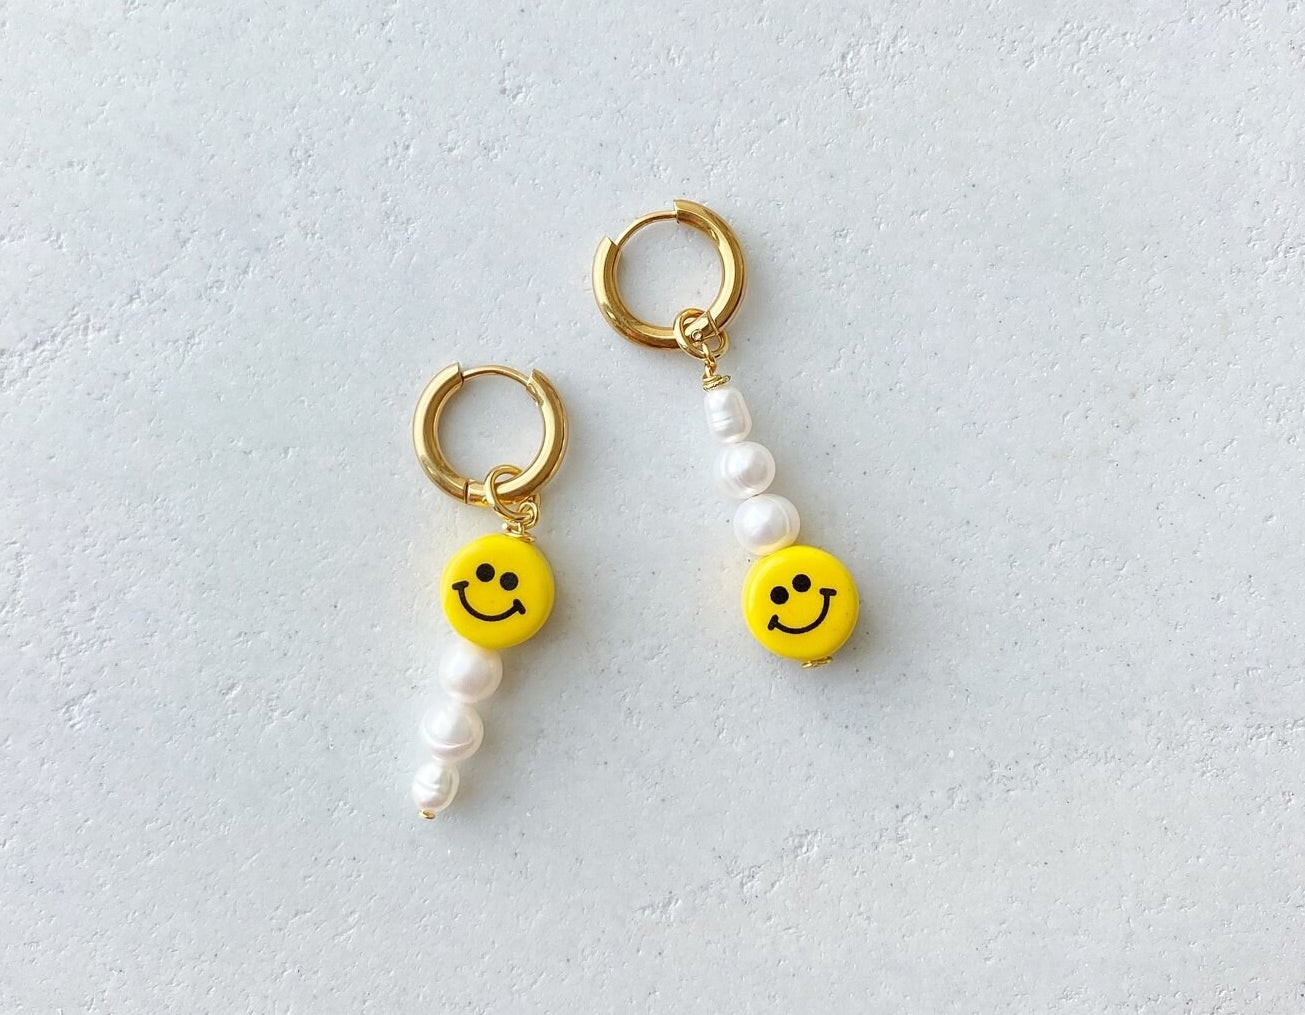 gold hoop earrings with pearls hanging from them and a smiley face on each one